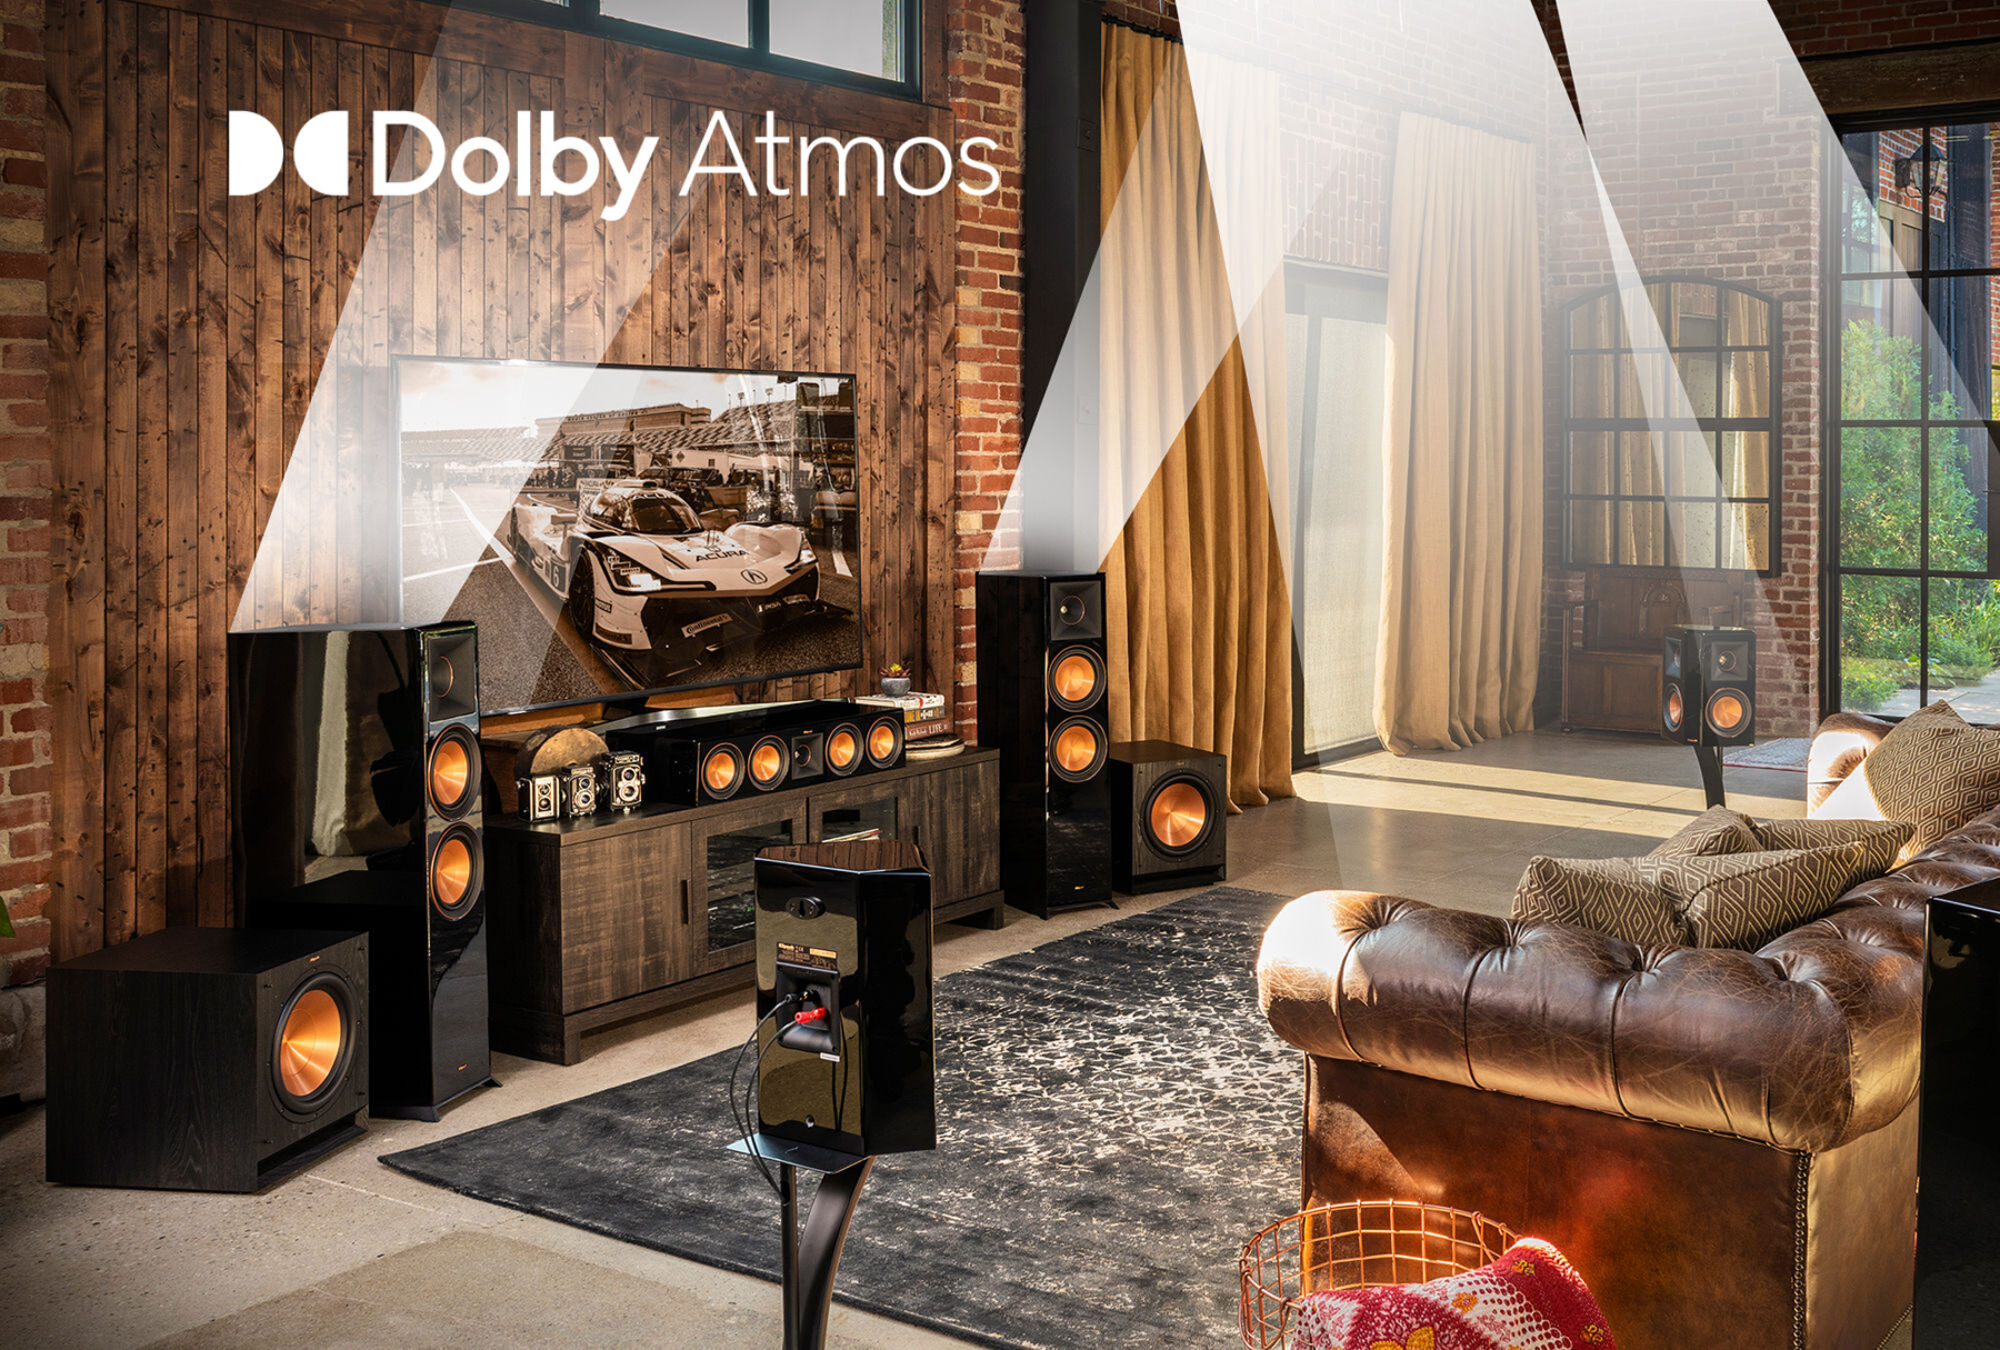 Klipsch Dolby Atmos best home theater speakers